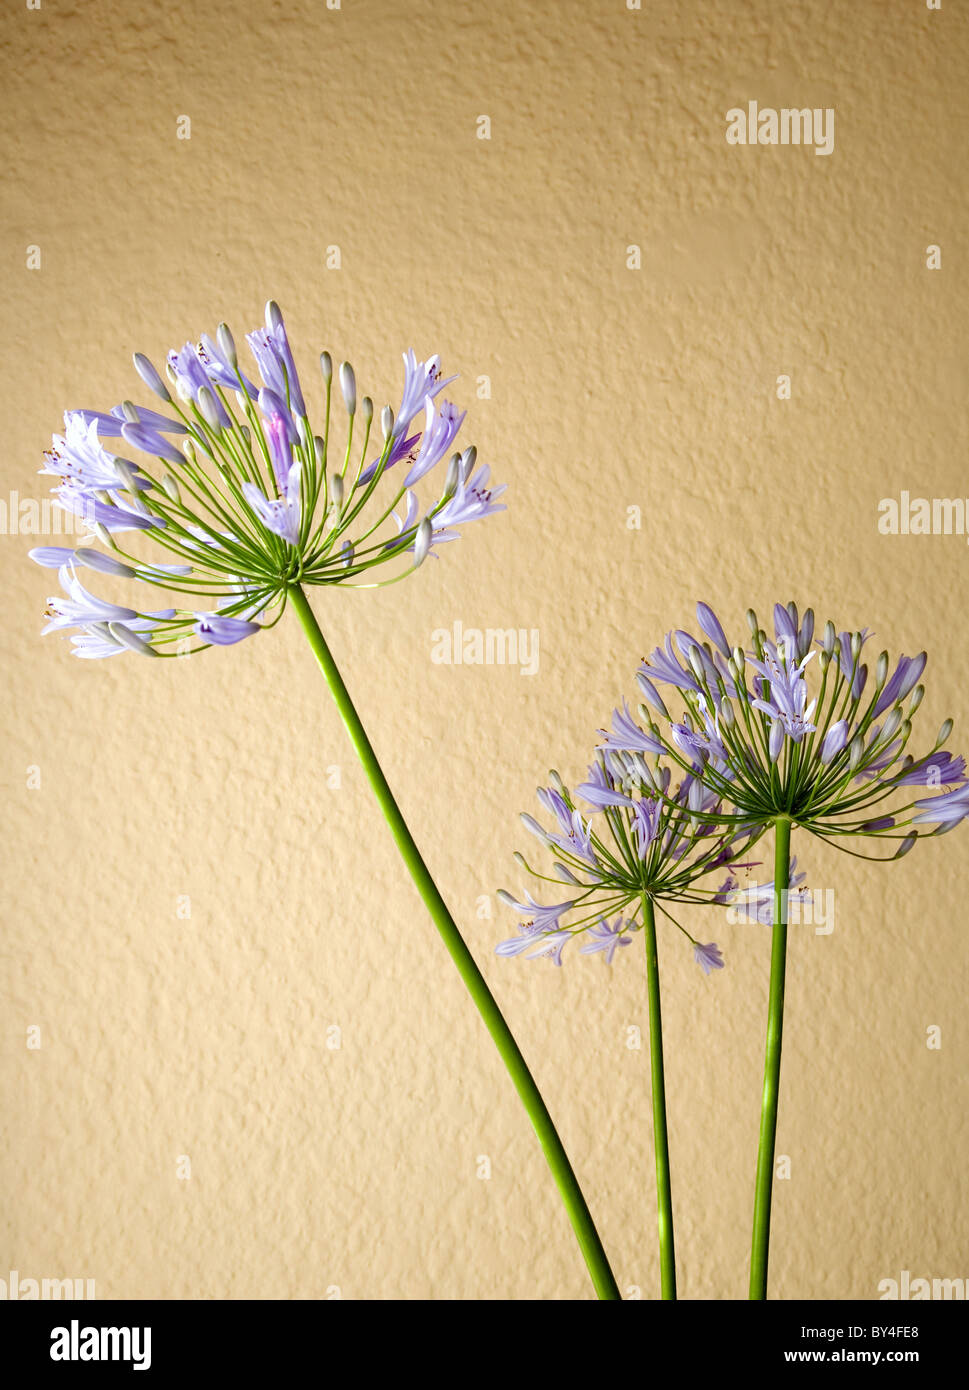 Agapanthus stems  against a yellow/beige wall - Stock Image